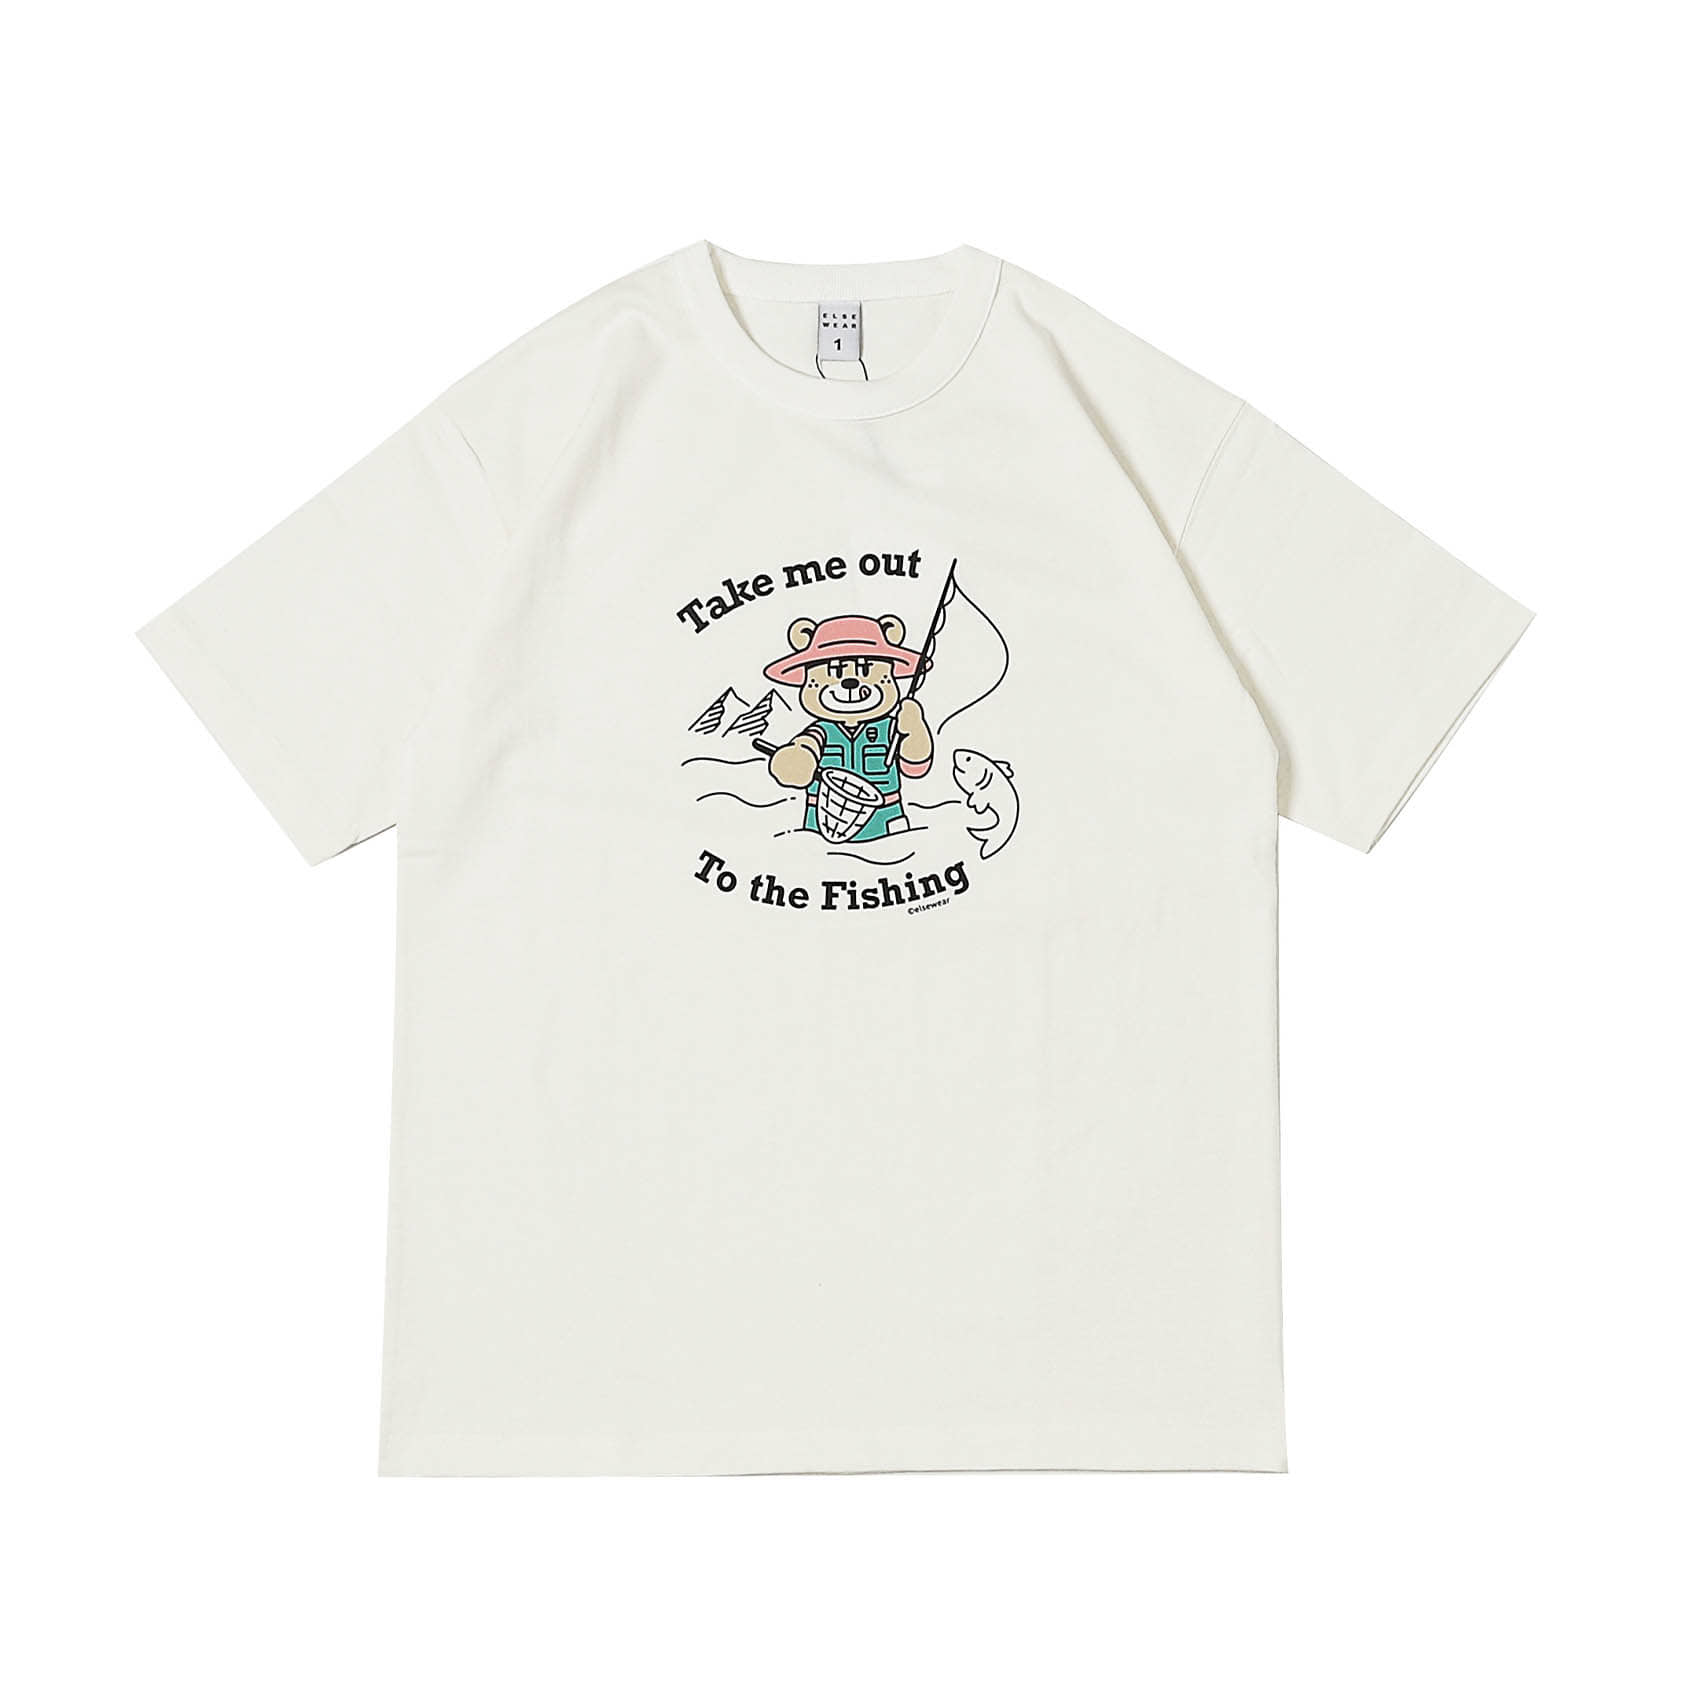 S/S PRINTED TEE - TAKE ME OUT